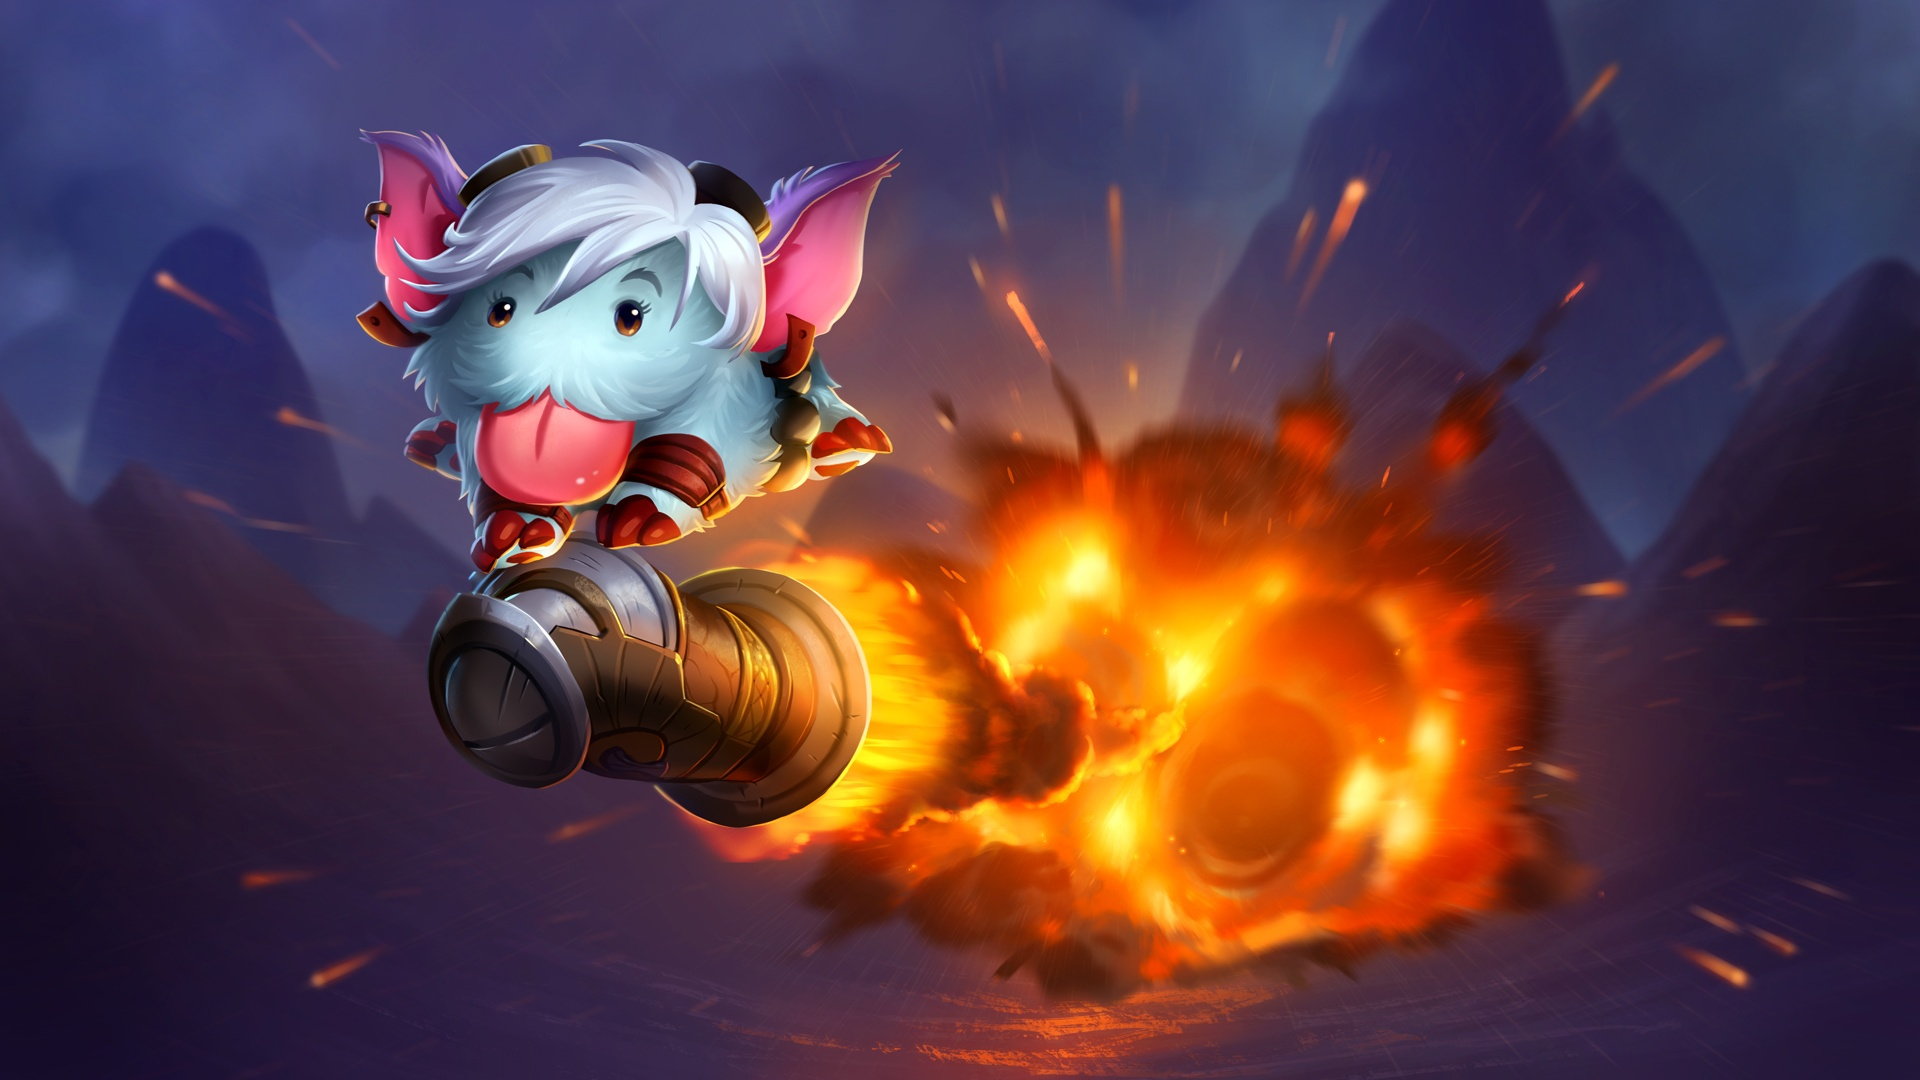 Tristana Poro League Of Legends Hd Games 4k Wallpapers Images